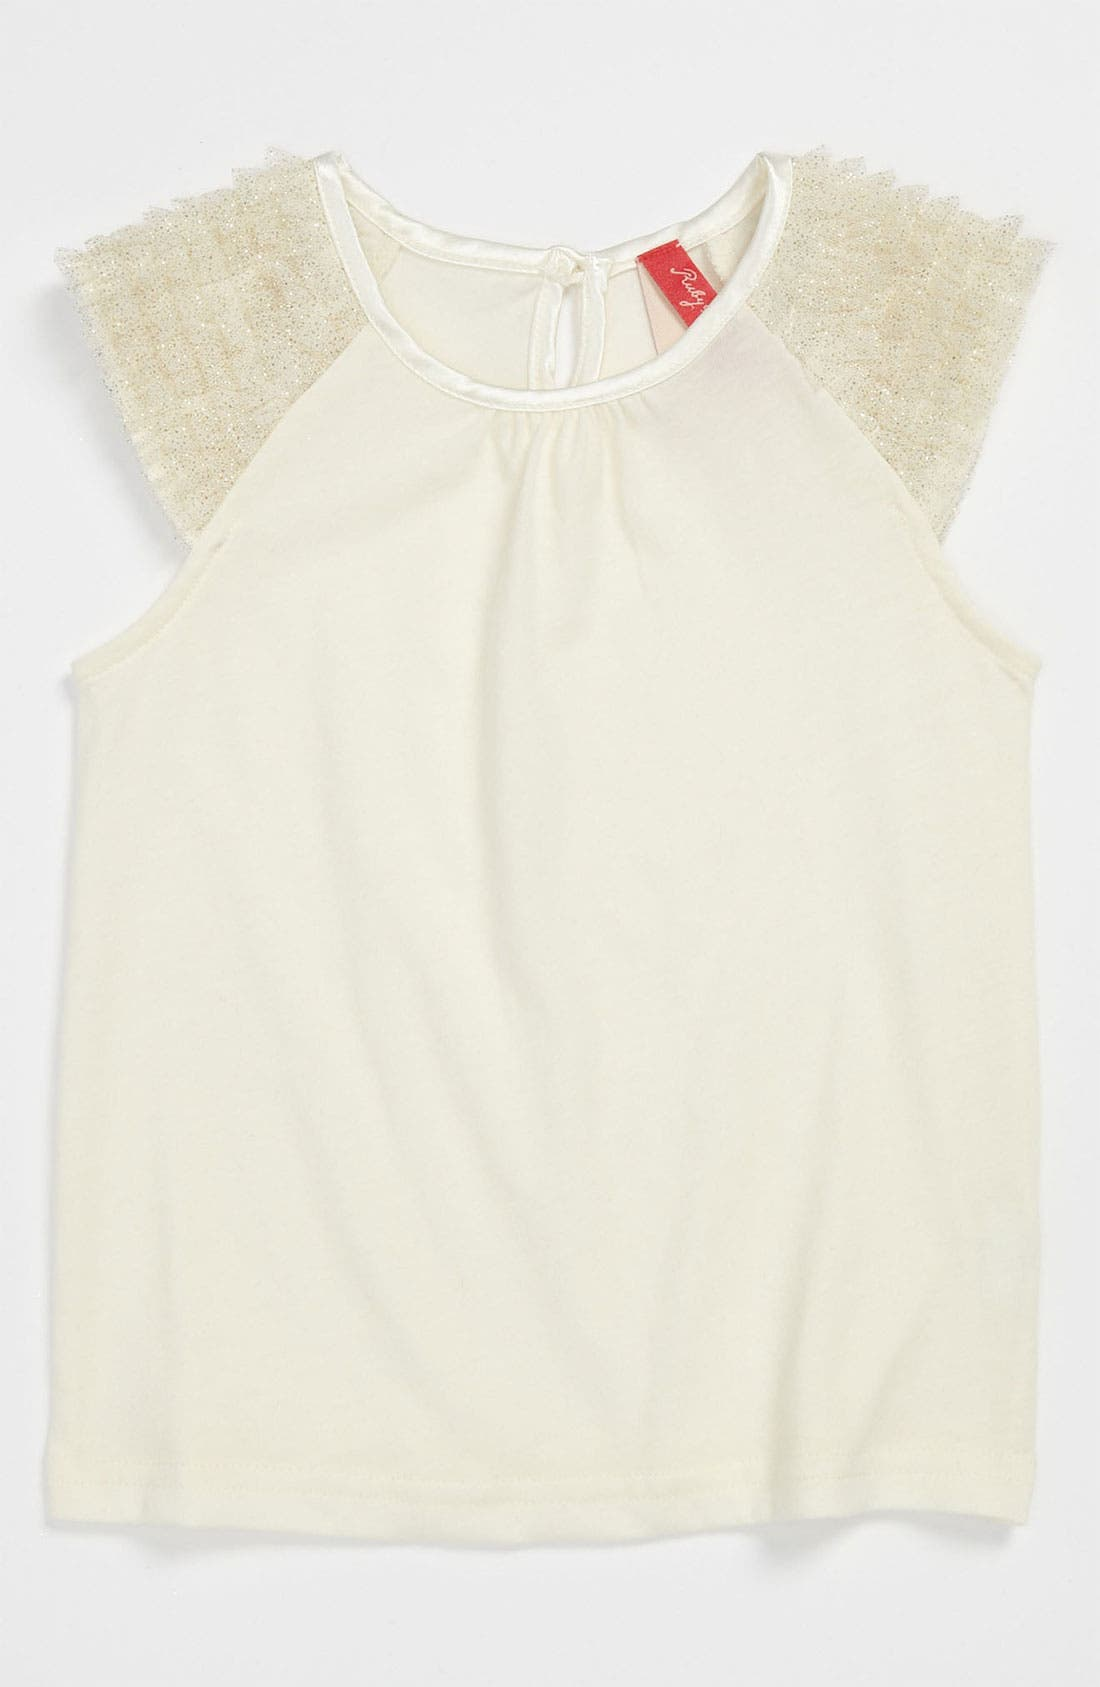 Main Image - Ruby & Bloom 'Mariah' Knit Top (Toddler)